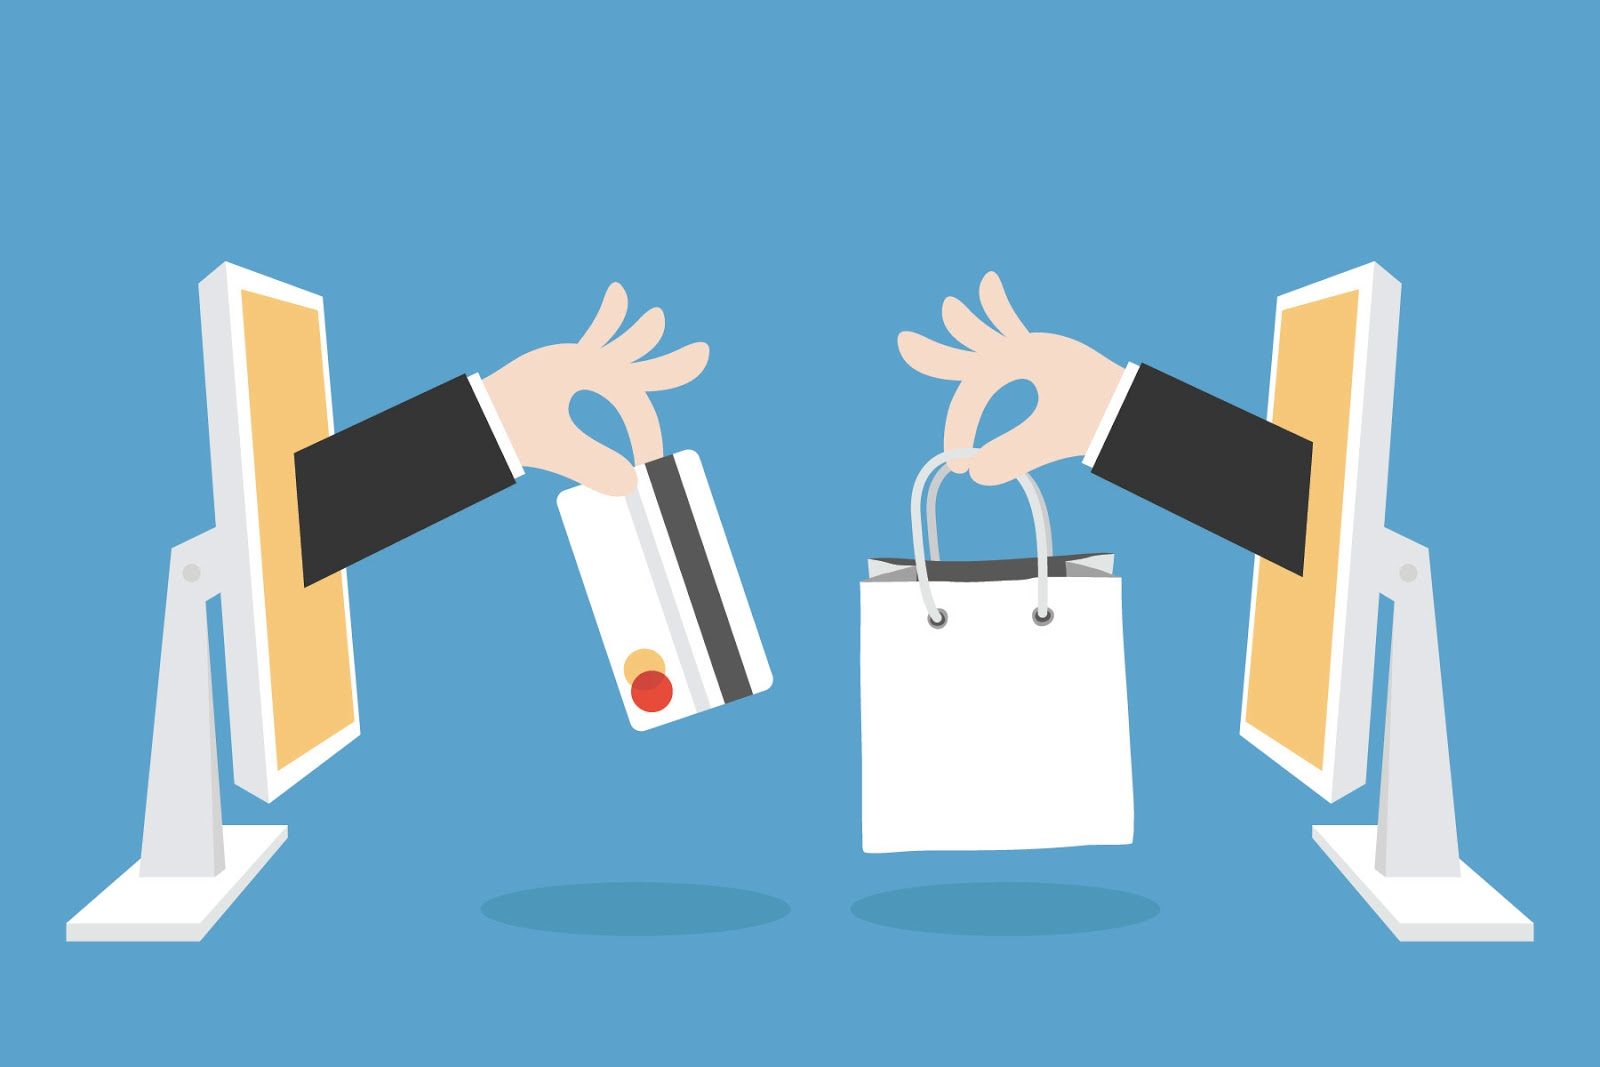 b9bf76d4fbc6f Looking for Best Online shopping sites in India or Top 10 ten 2013 shopping  website in India, here in this post we going to tell you top 20 Indian  online ...